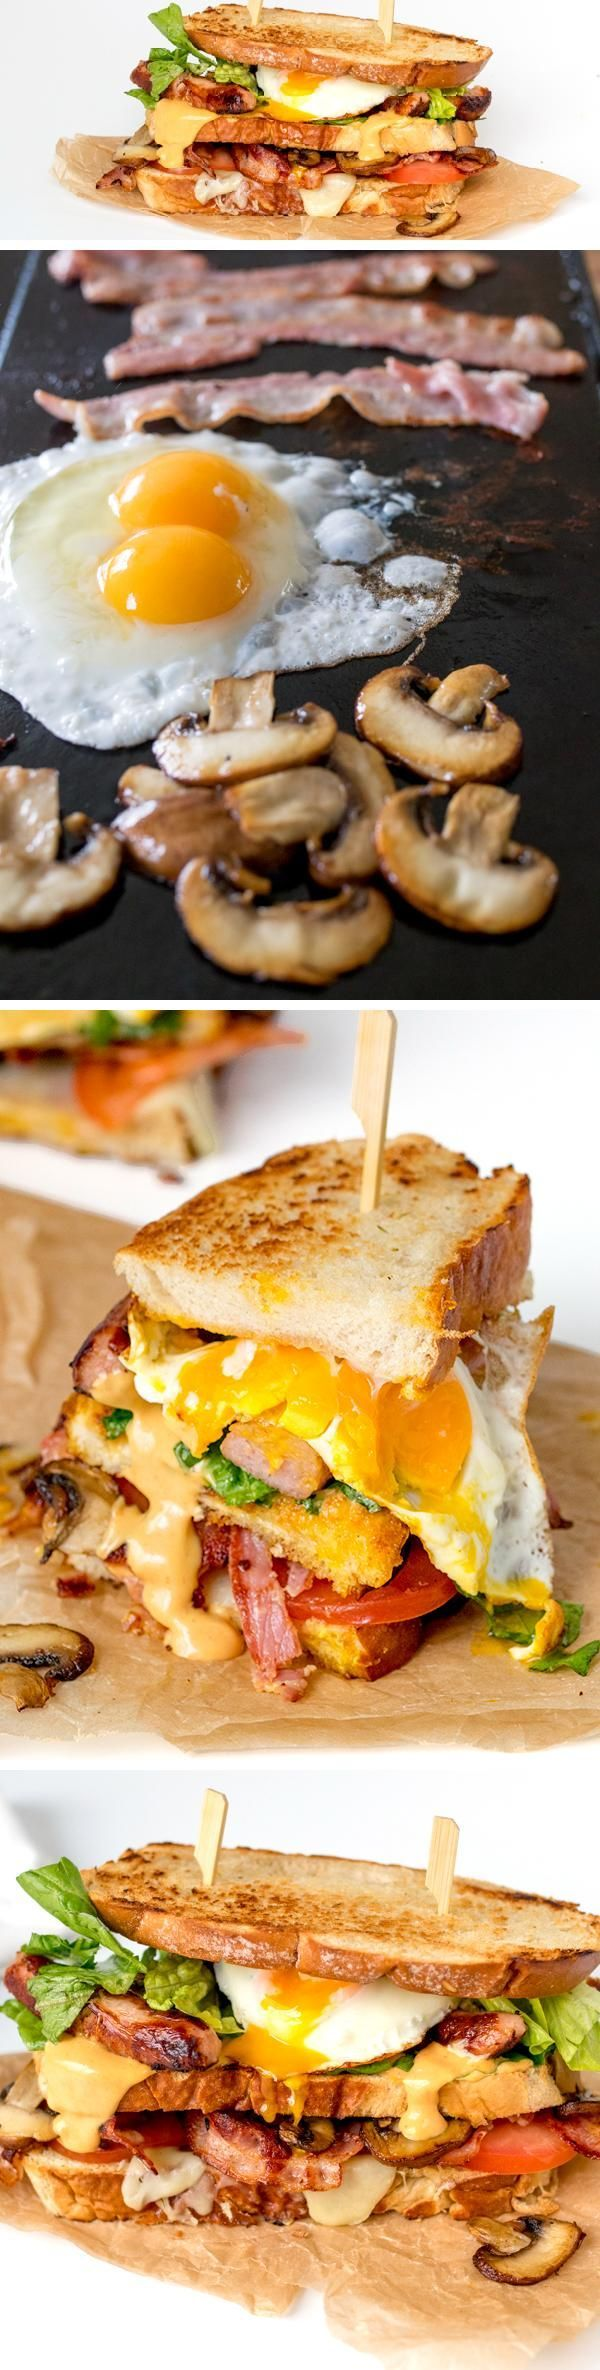 The ultimate BREAKFAST GRILLED CHEESE with a smoky special sauce - get those napkins ready, it's a messy one!